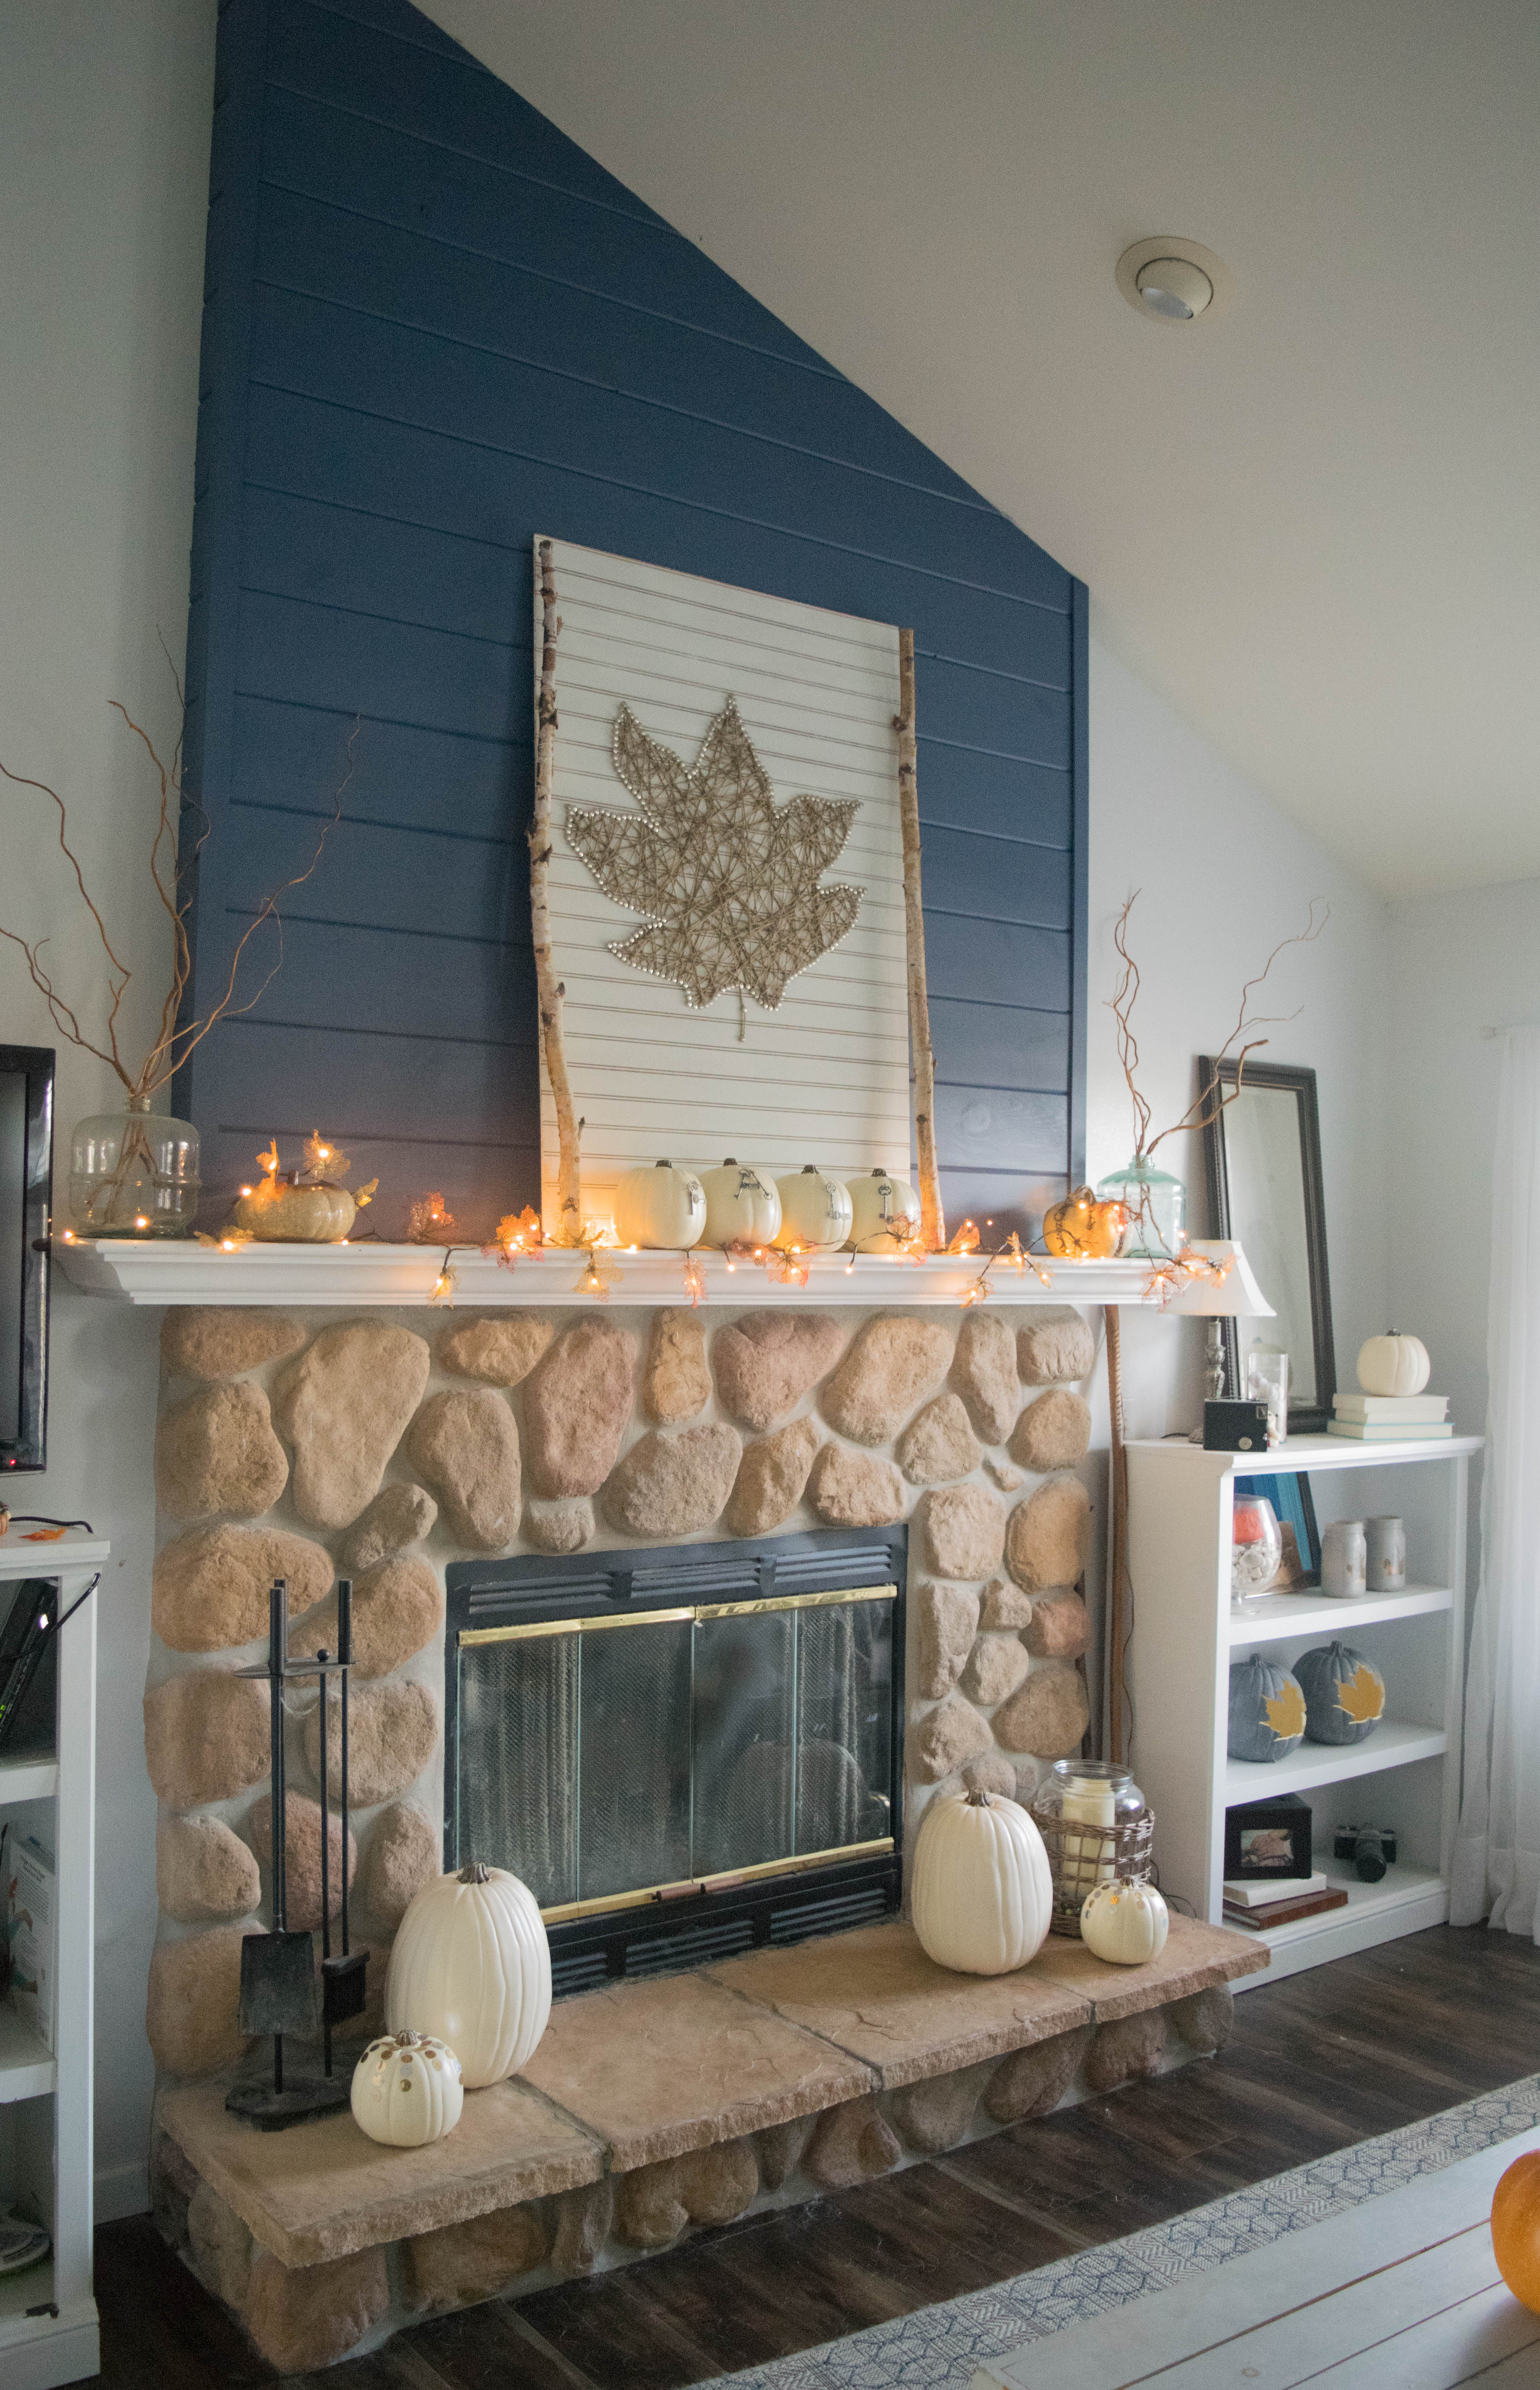 diy fireplace mantel decor ideas 1 of 1 our house now